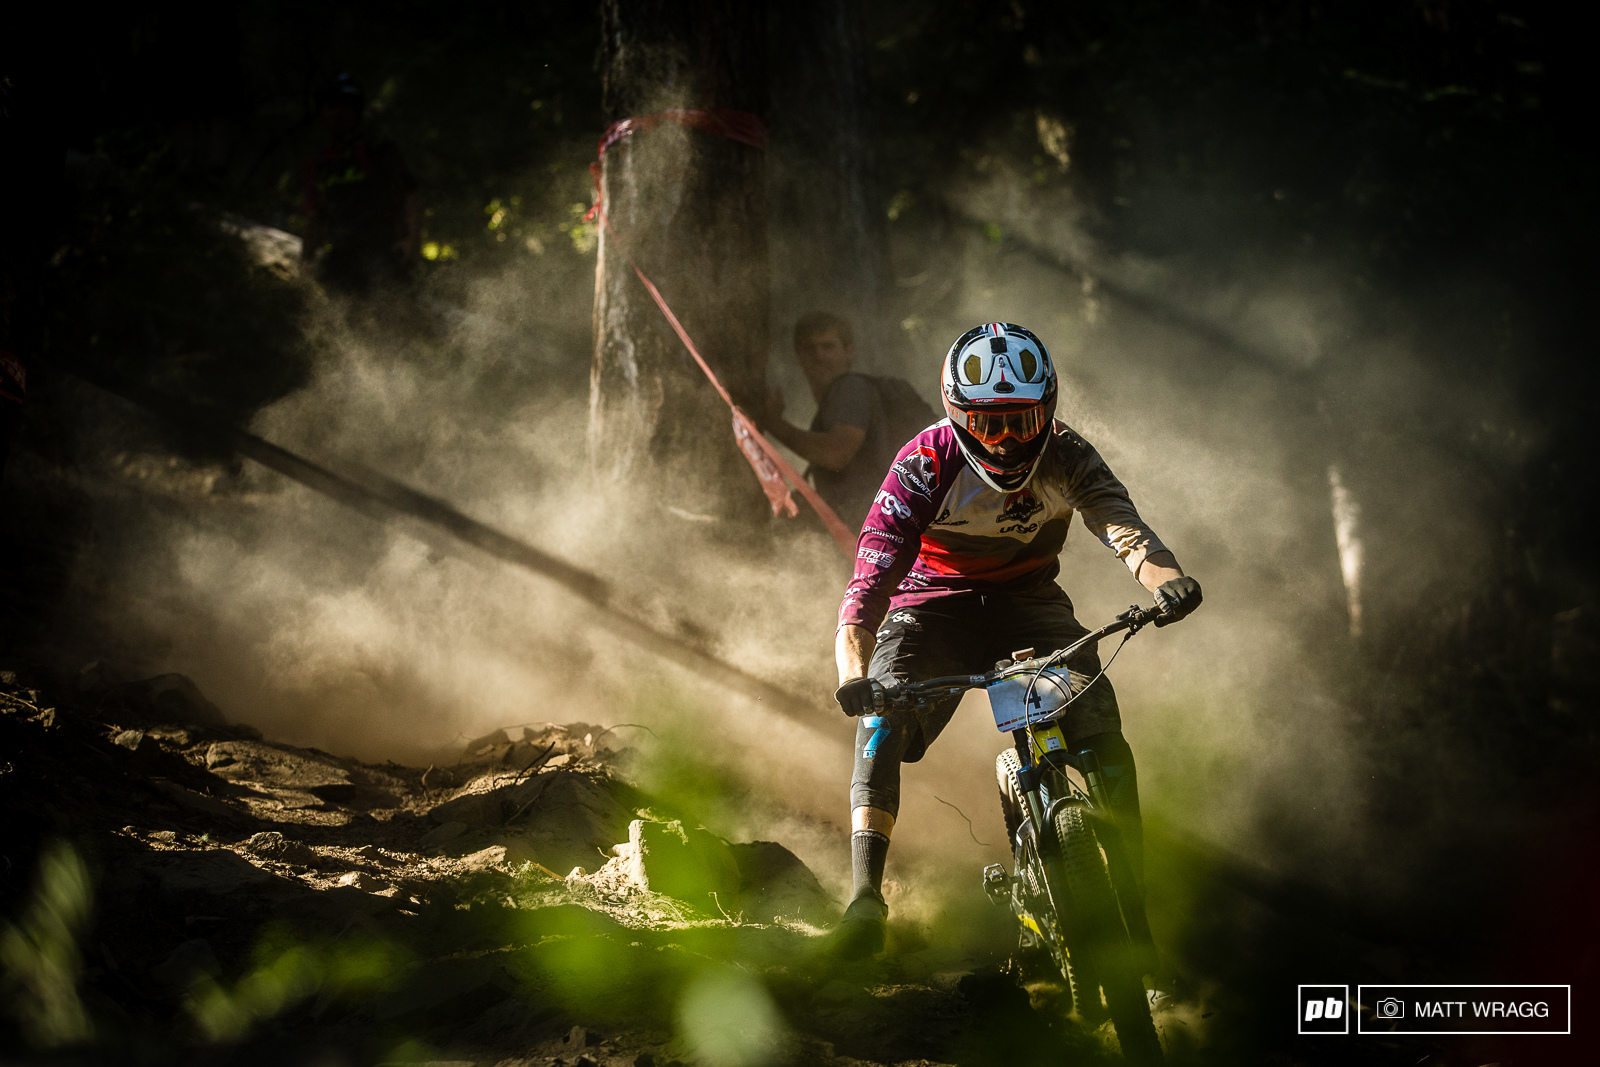 It all went wrong for Flo Nicolai on stage four as a crash on the big chute spelled an end to his race.